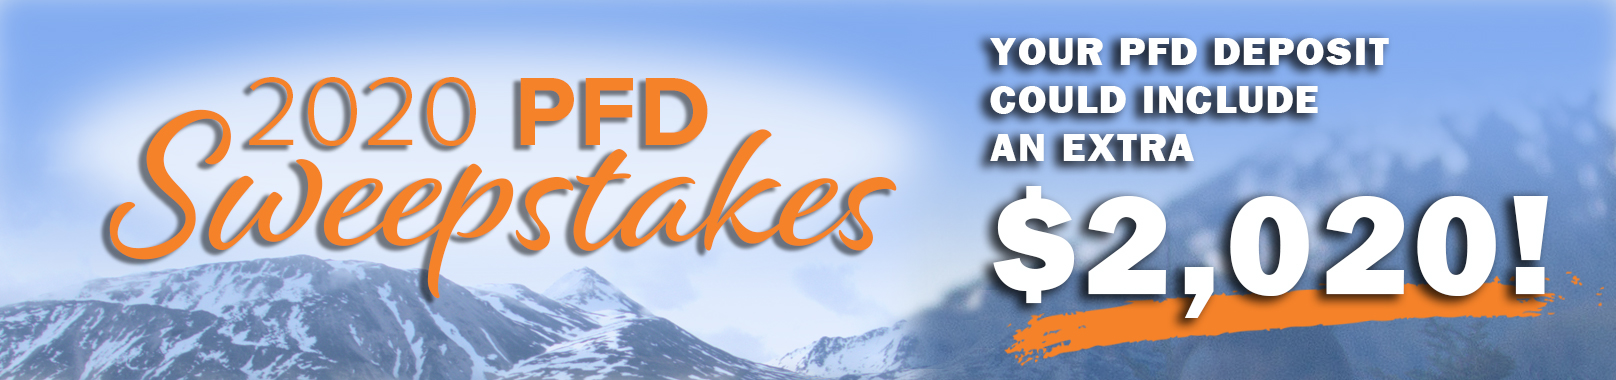 Ean an extra $2,020 in Denali's PFD Sweepstakes!